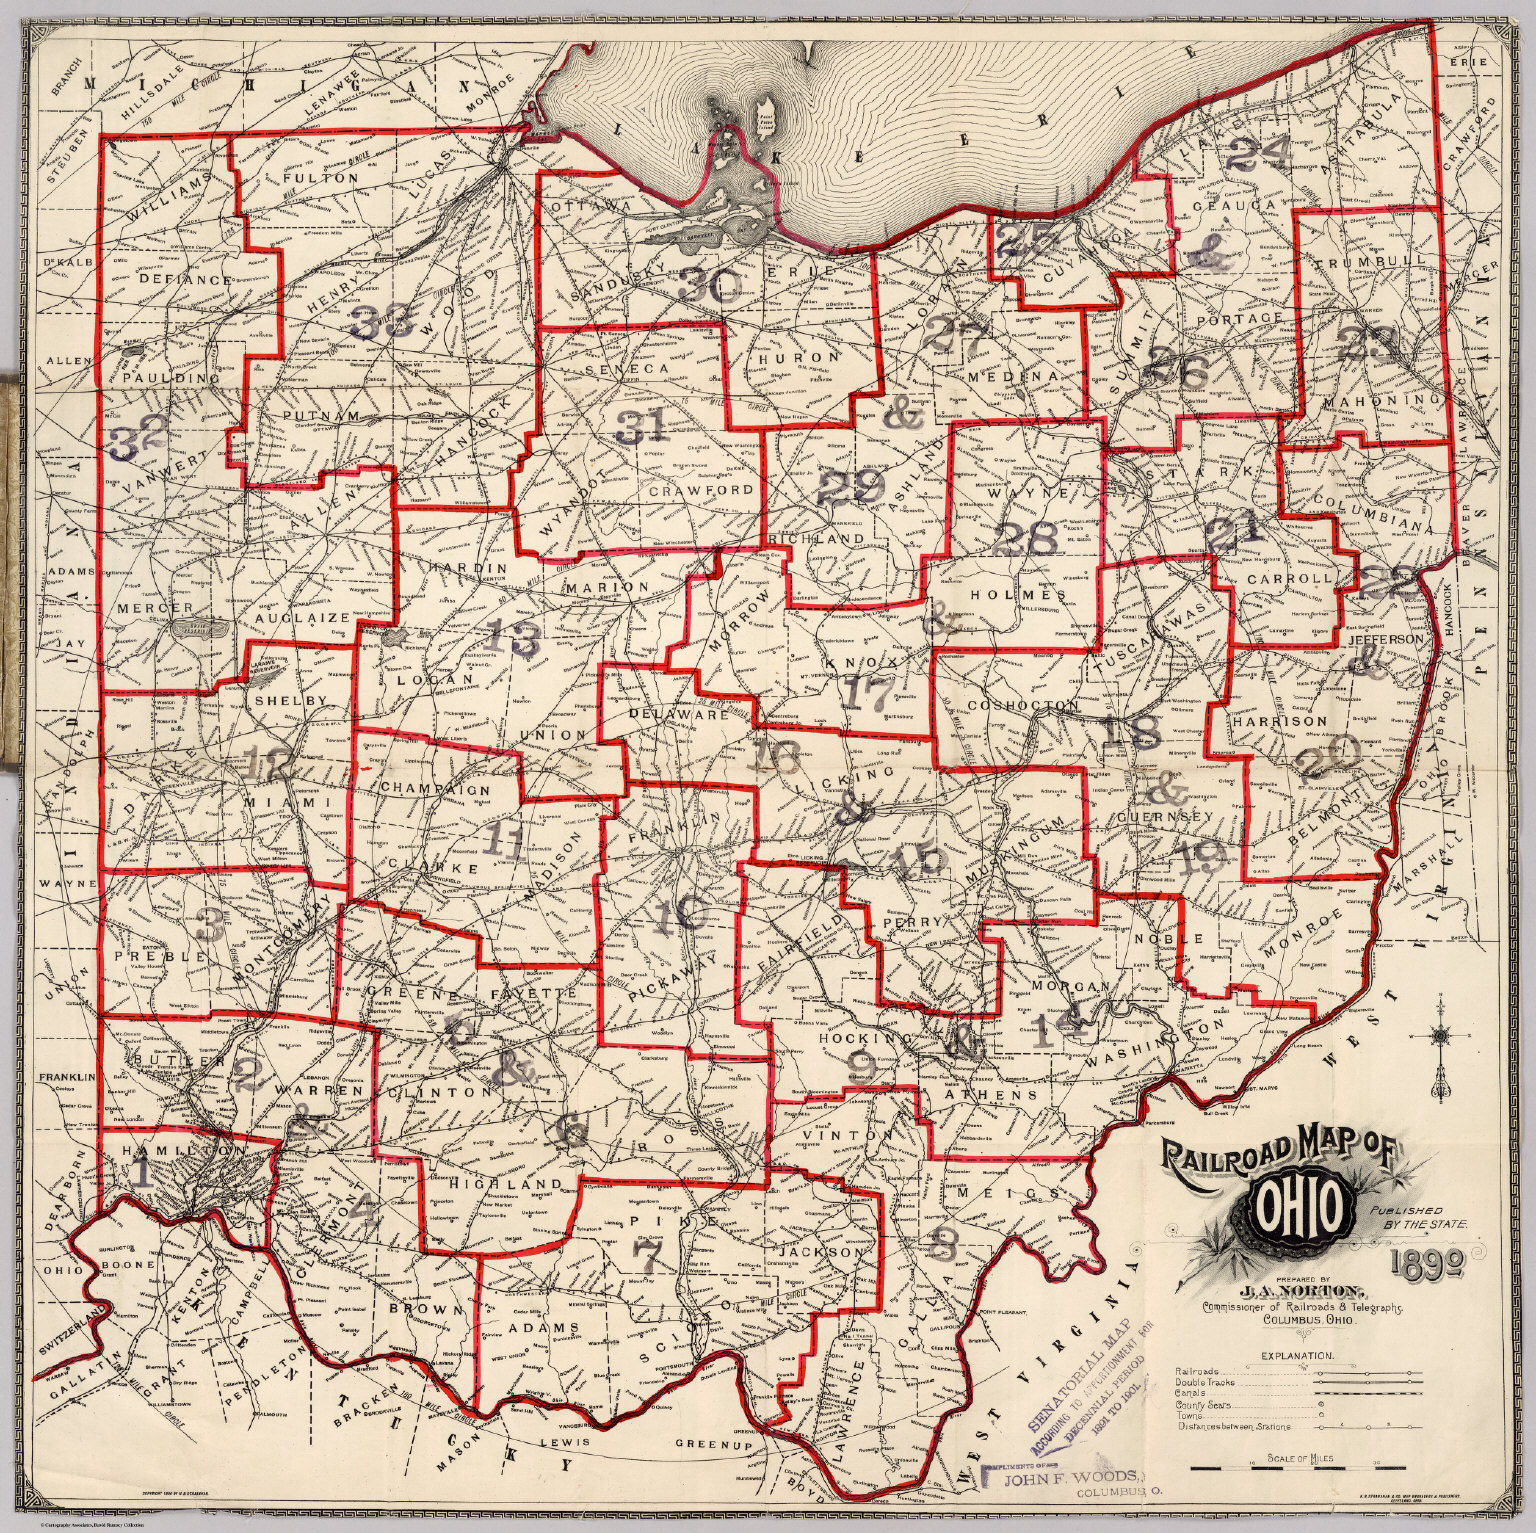 Railroad Map Of Ohio - David Rumsey Historical Map Collection